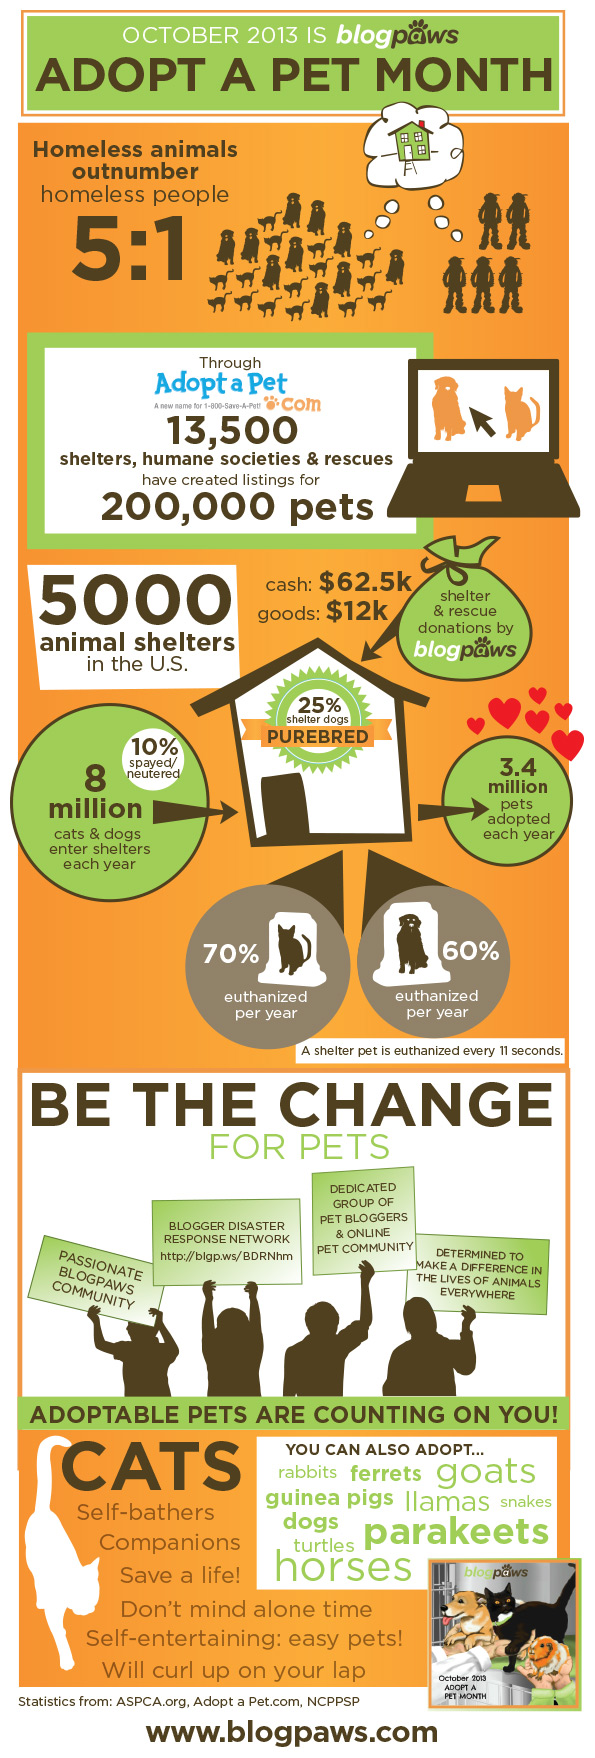 BlogPaws Adopt a Pet Month Infographic: October 2013